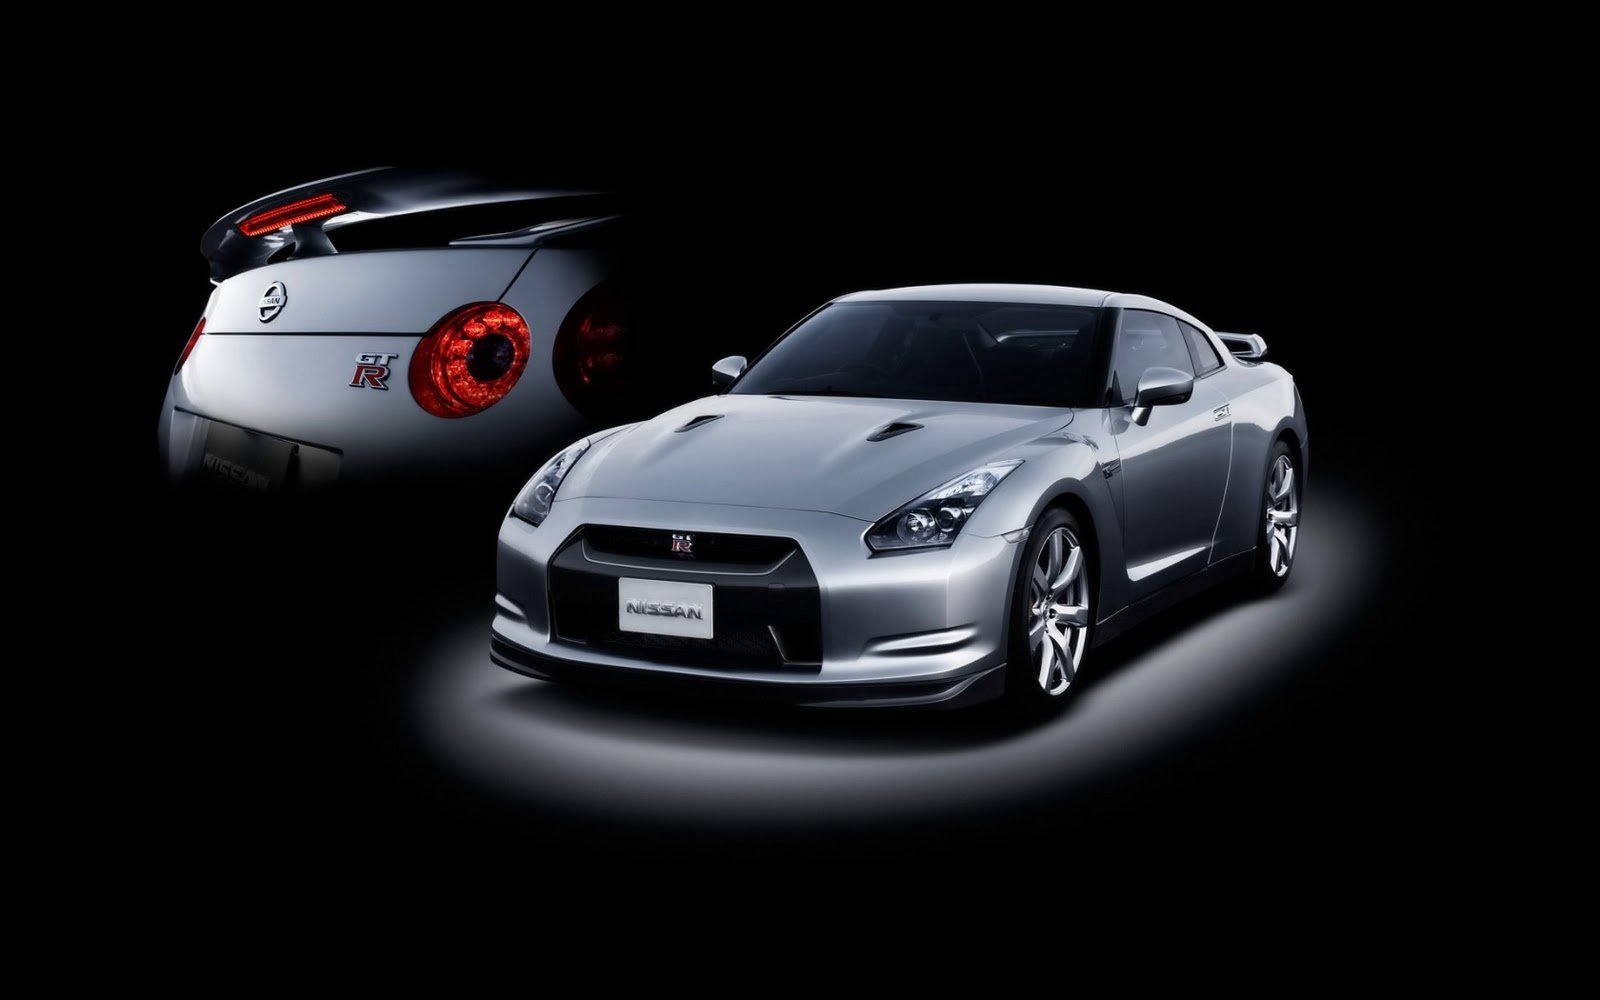 Latest Car Automobile World Pics Of Nissan Gtr Car Free Download